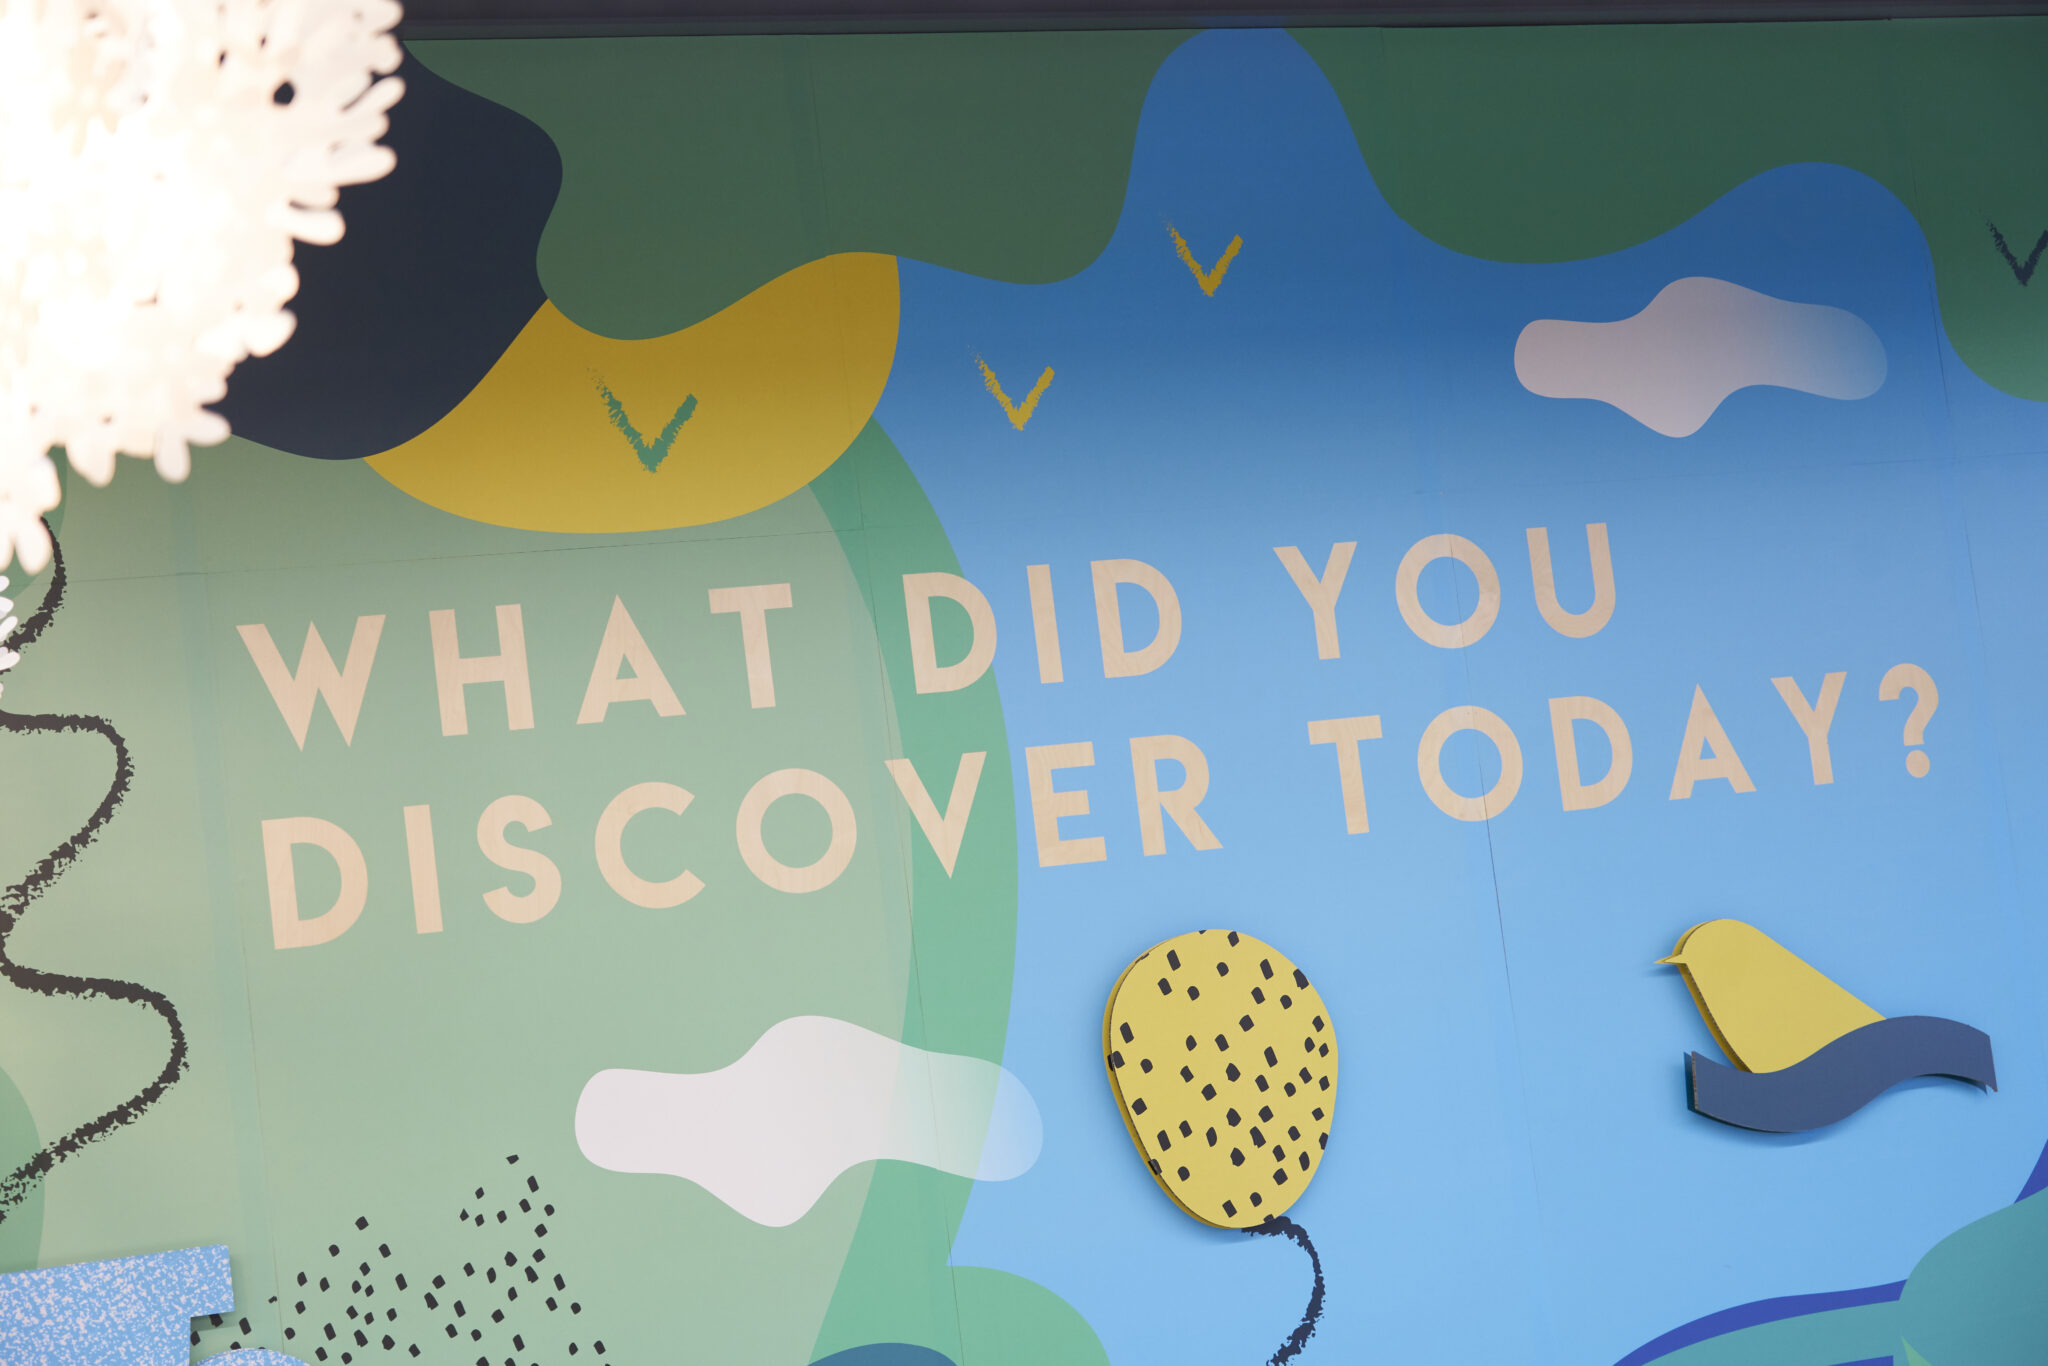 What did you discover at Moss & moor today?